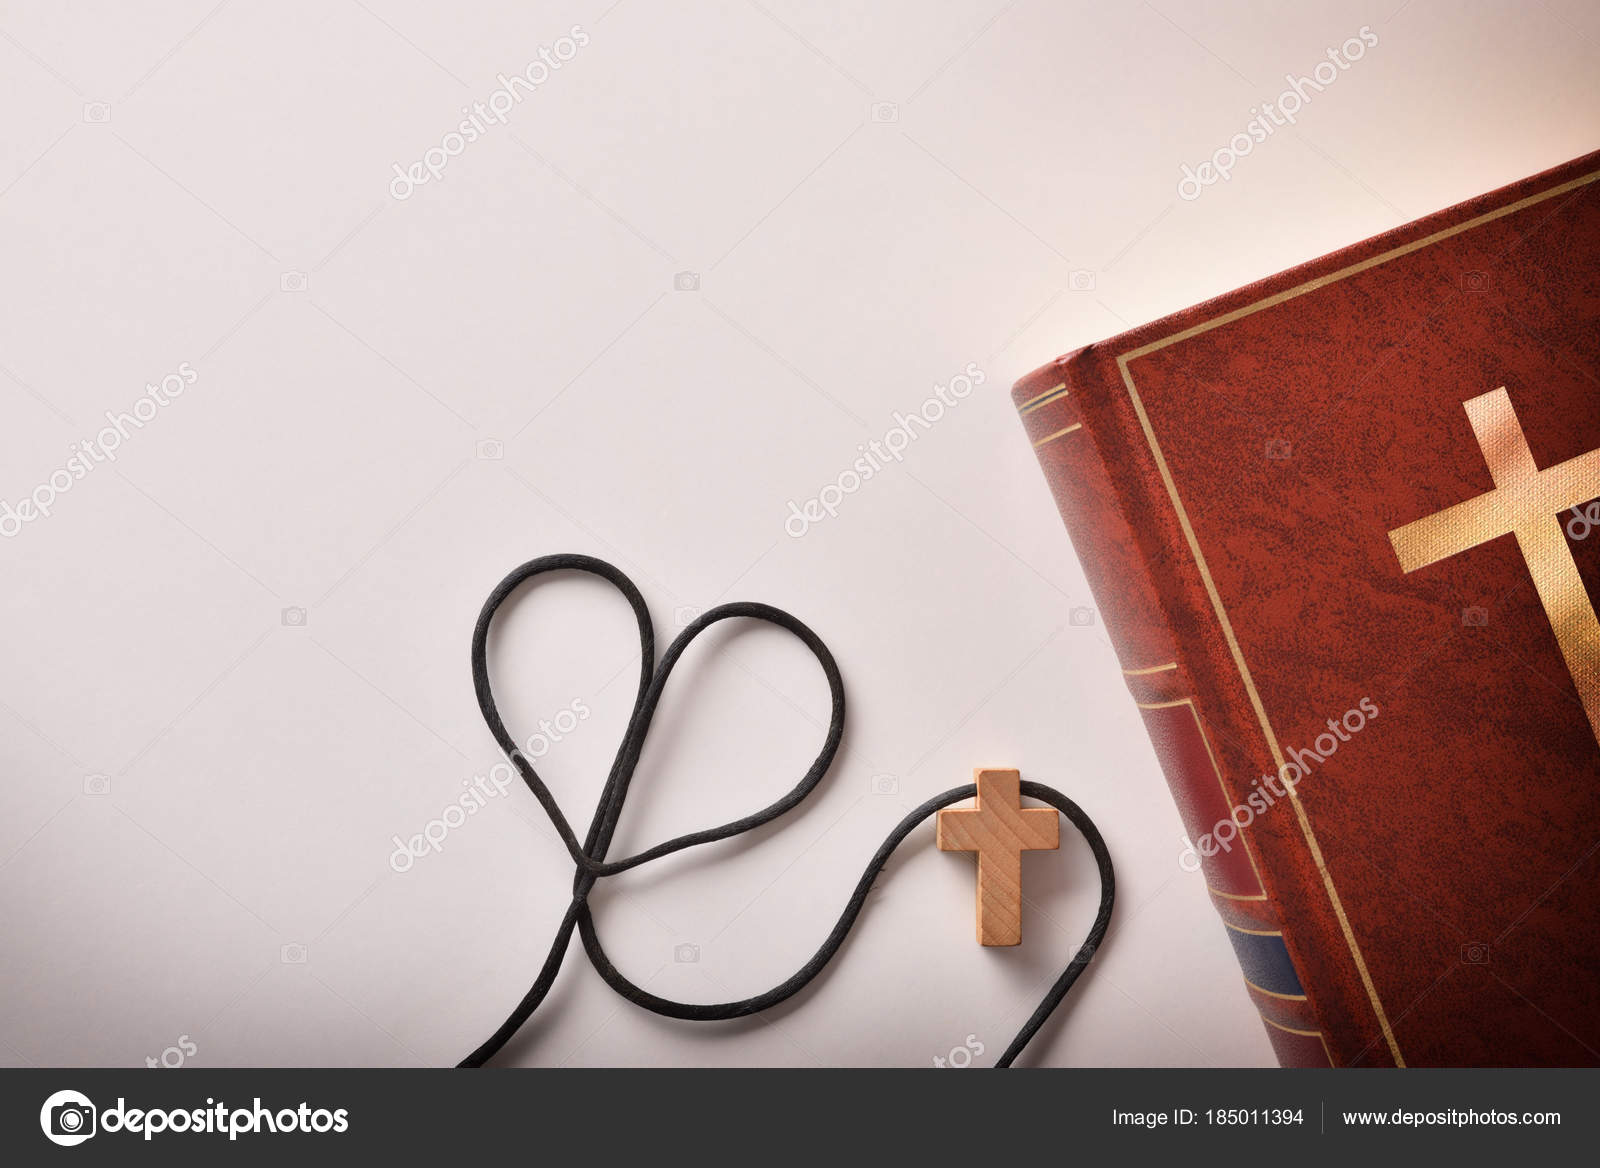 Bible With Cross Shaped Pendant And A Heart Shaped Cord Stock